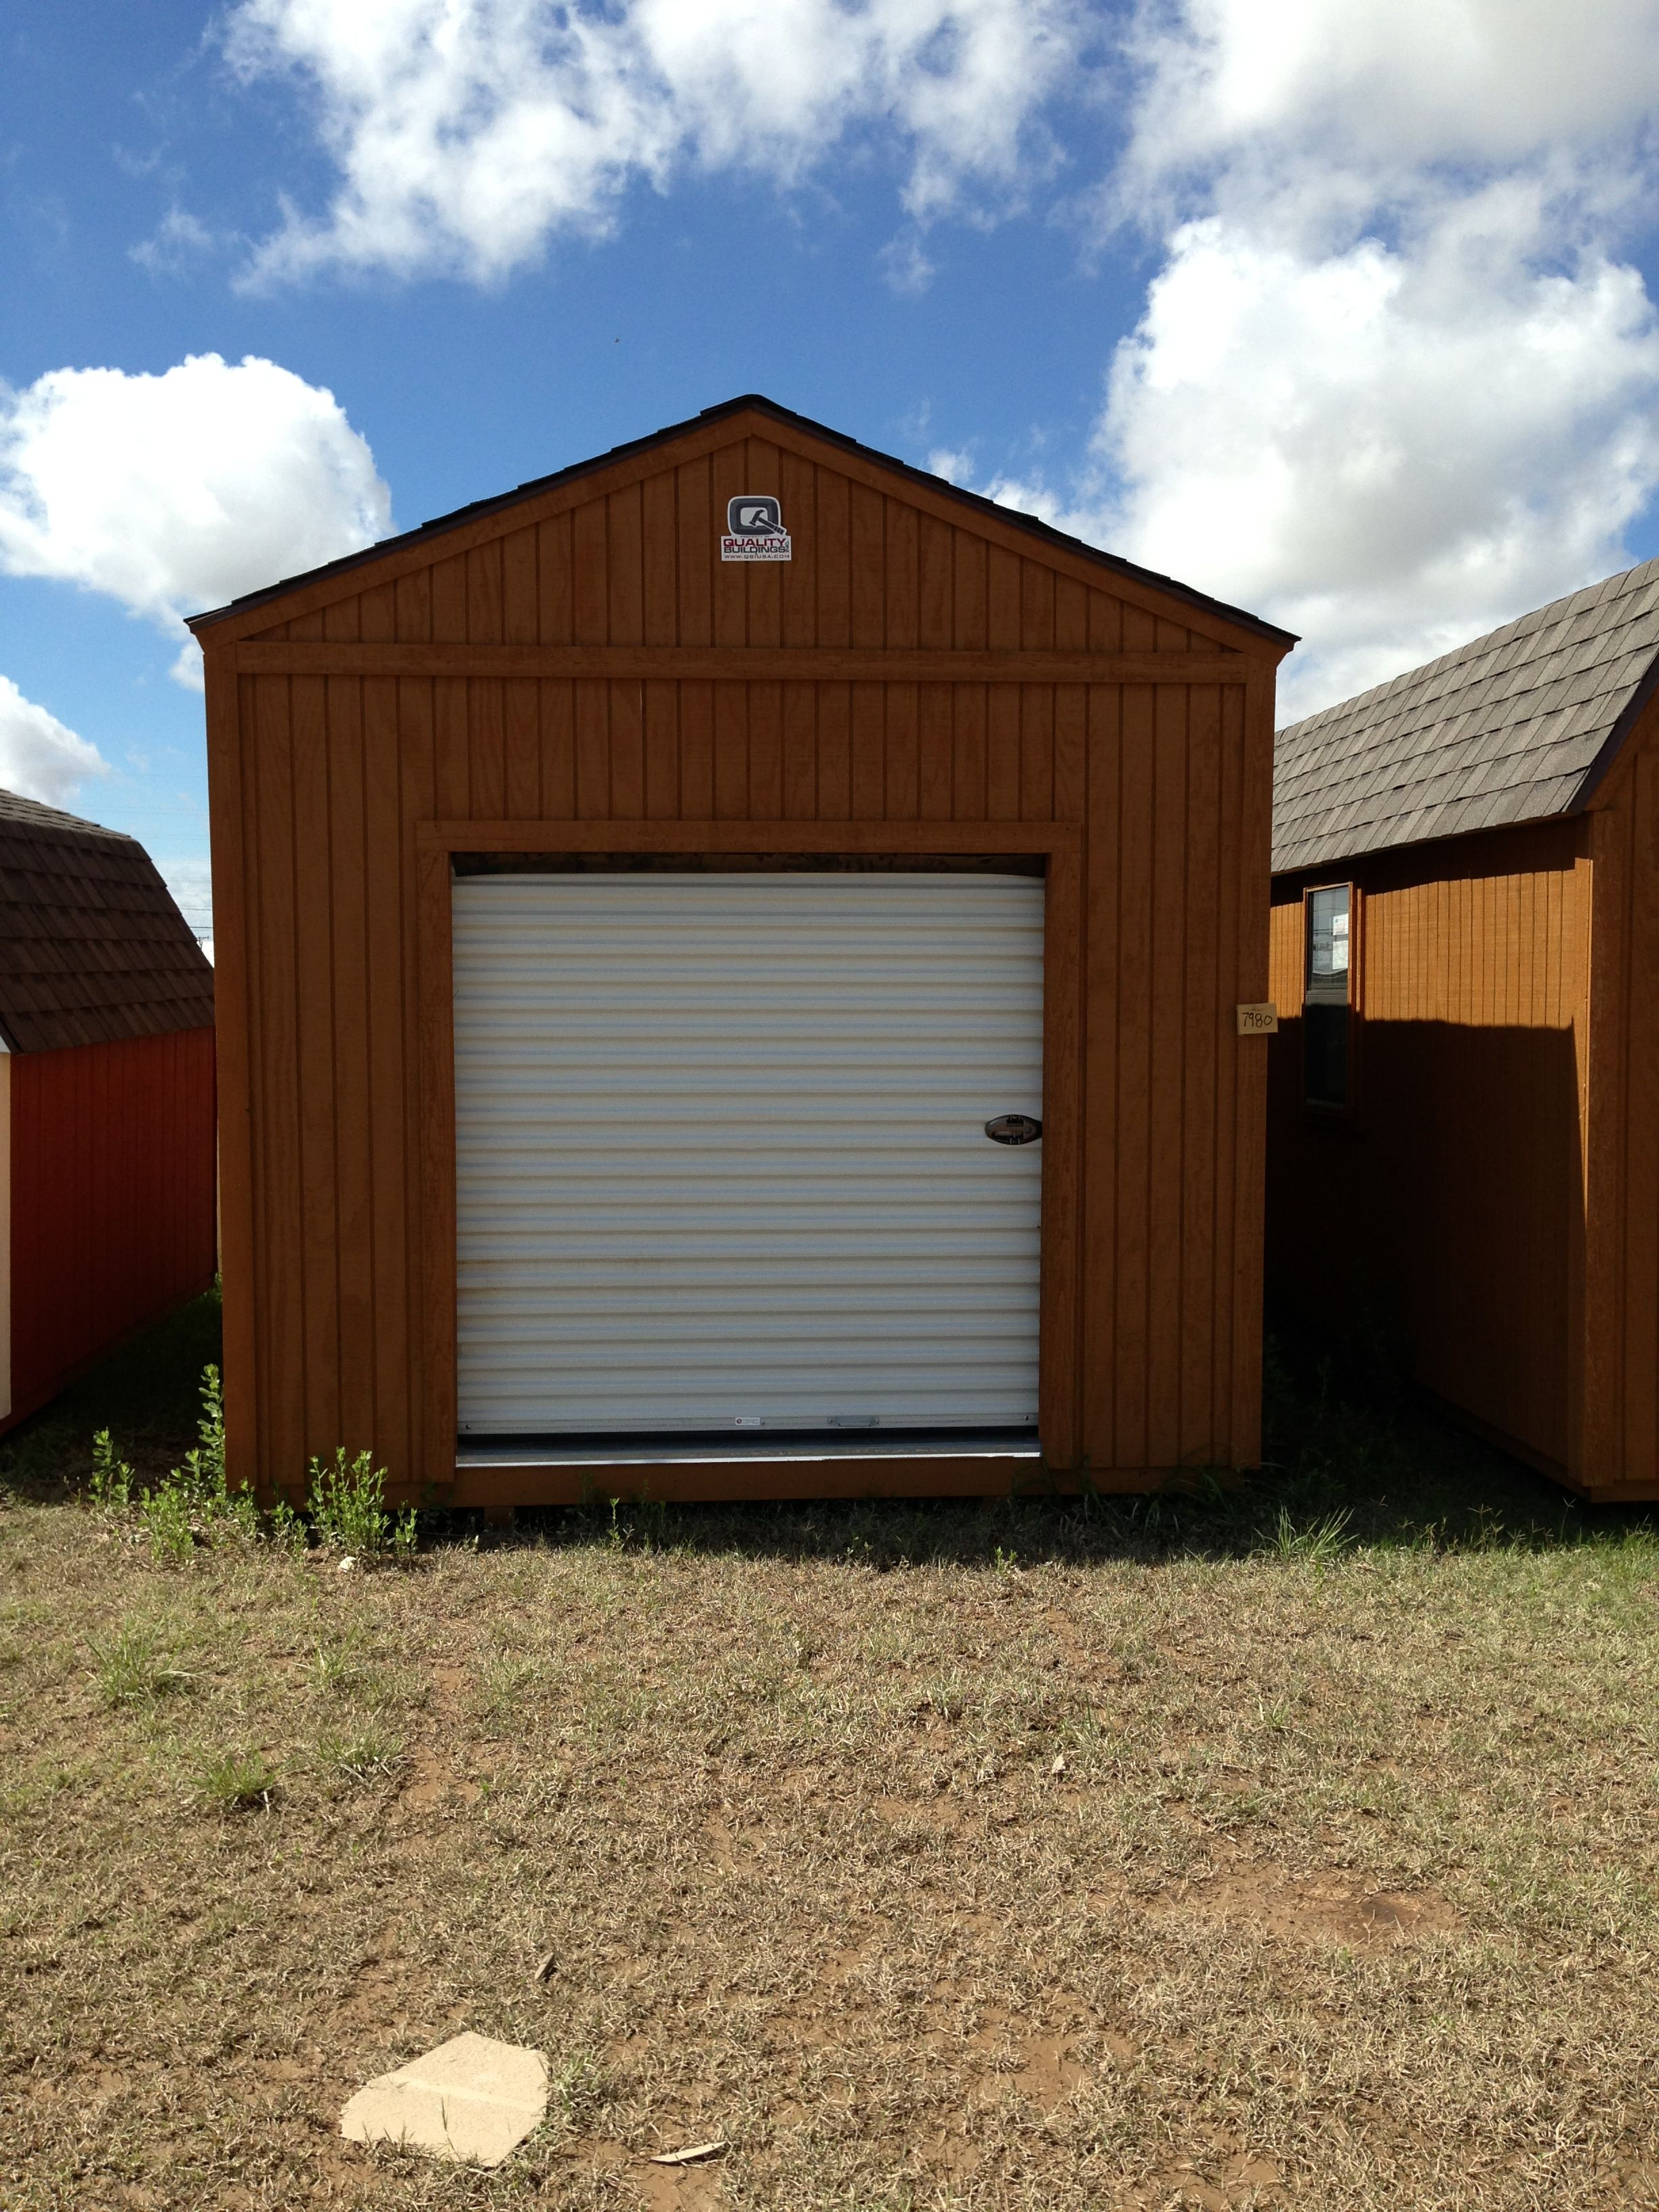 Beau 6 X 6 Roll Up Door. Free Delivery, Free Set Up/